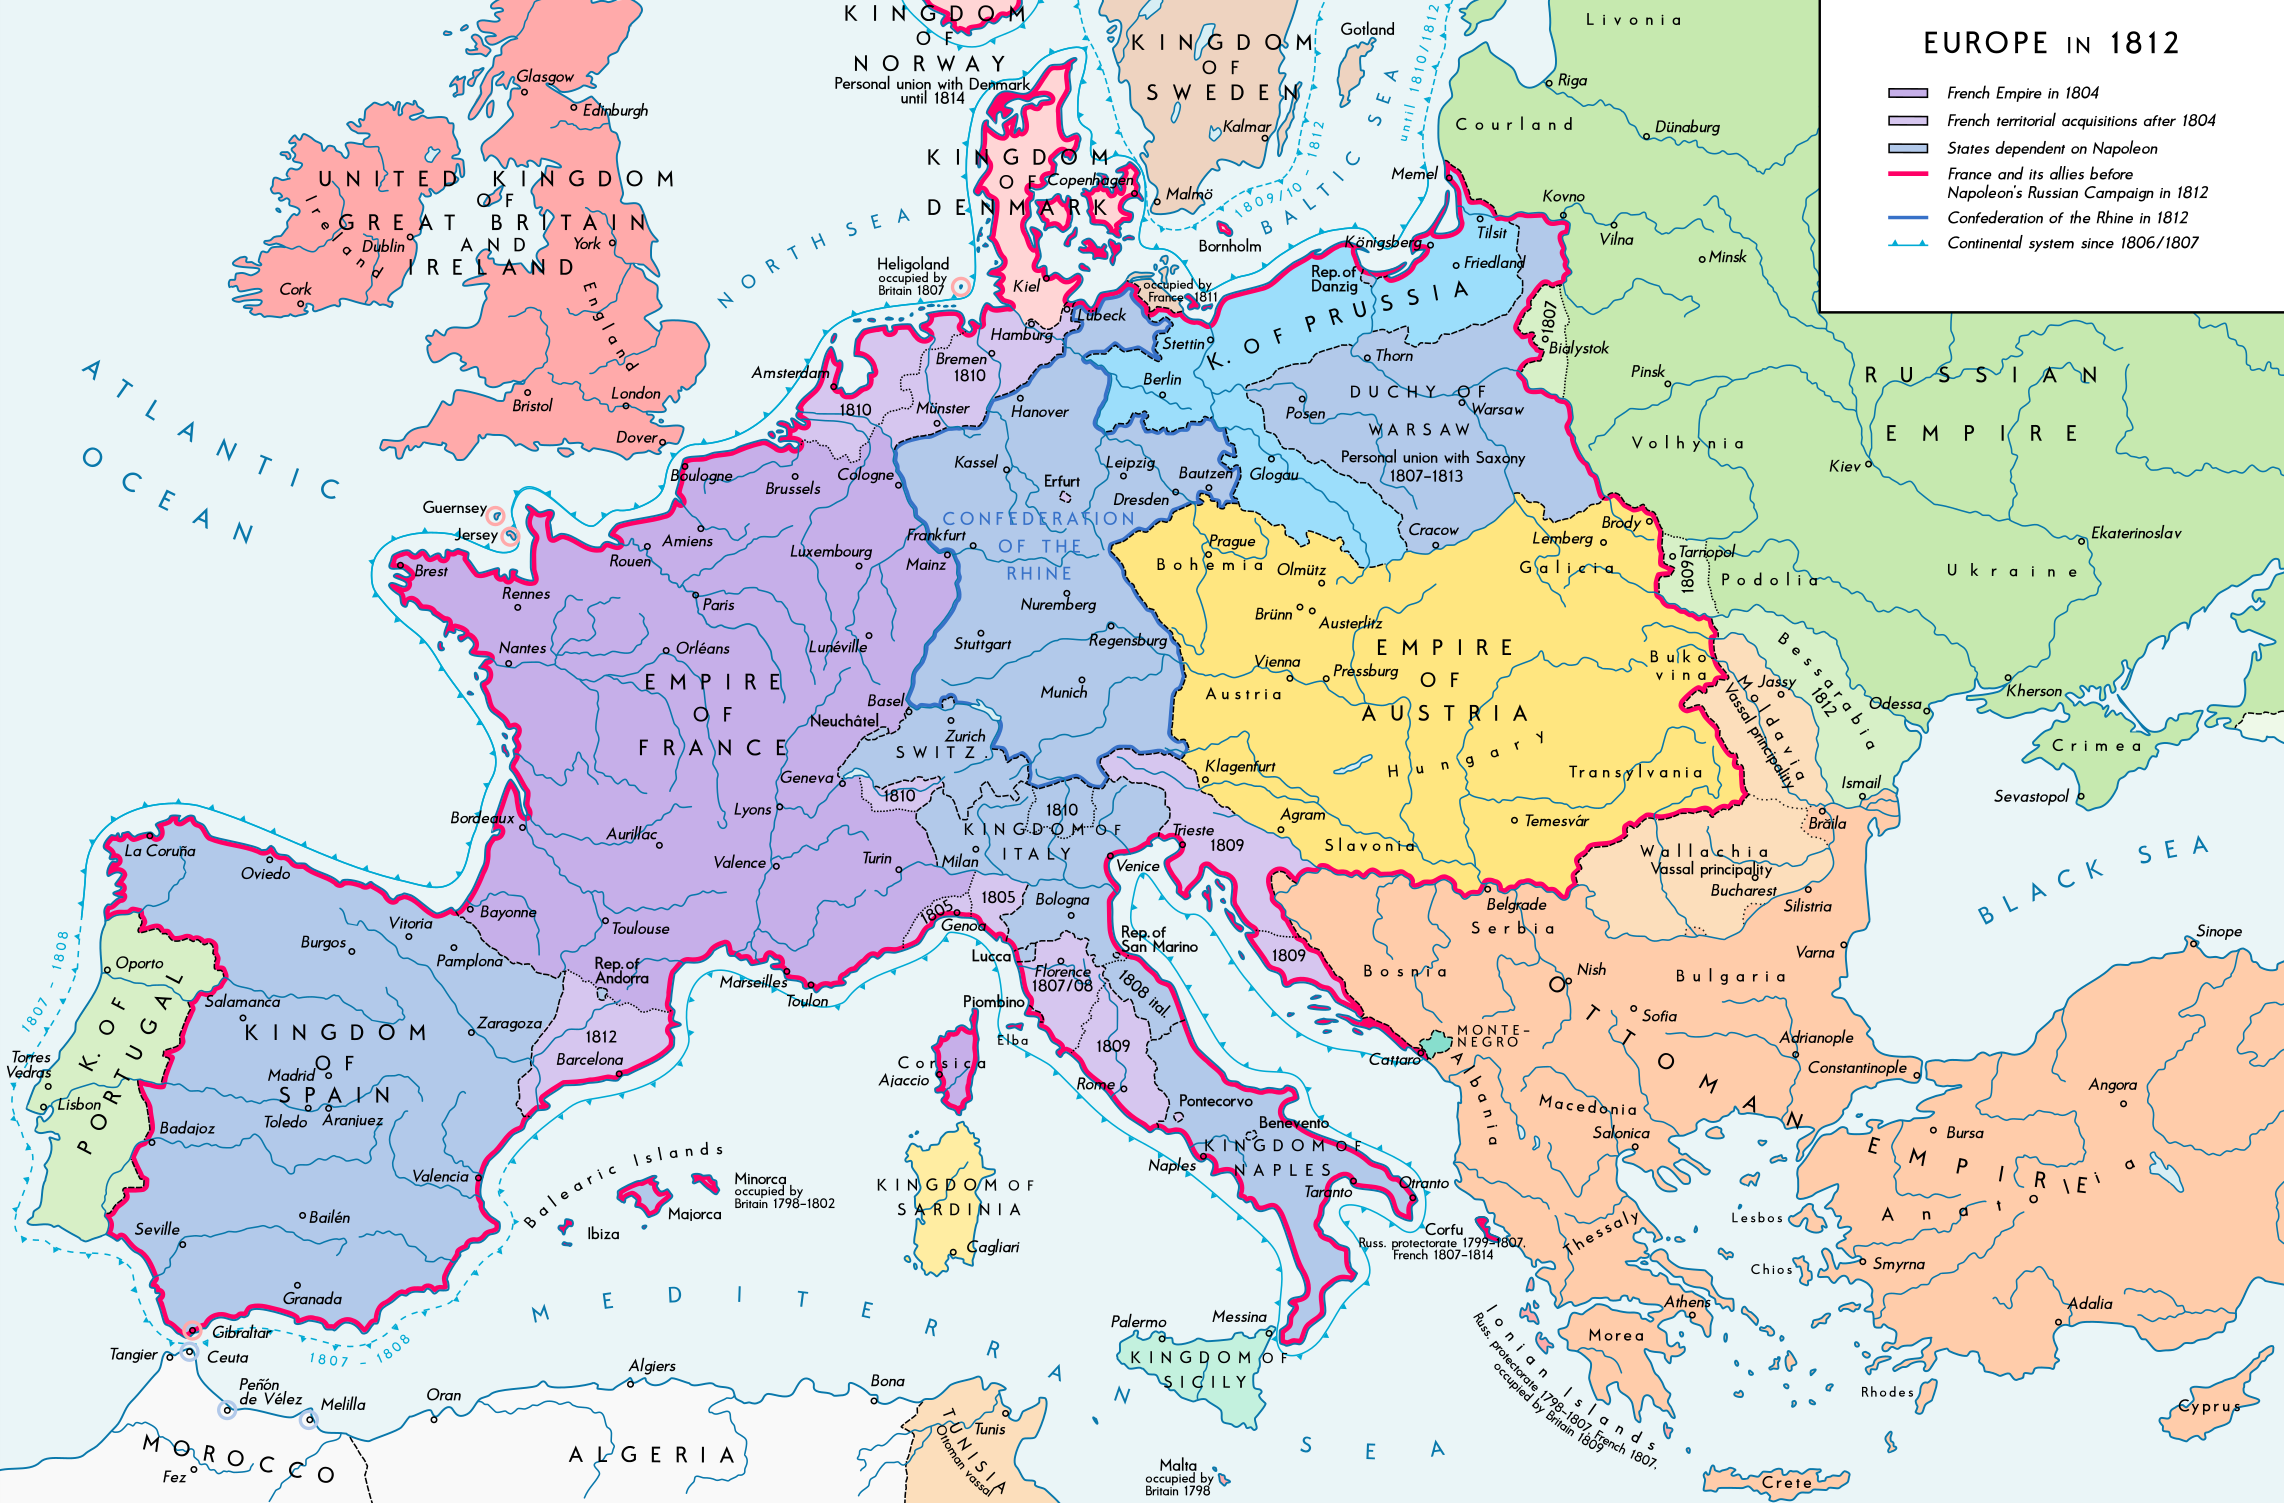 FileEurope 1812 map enpng Wikimedia Commons